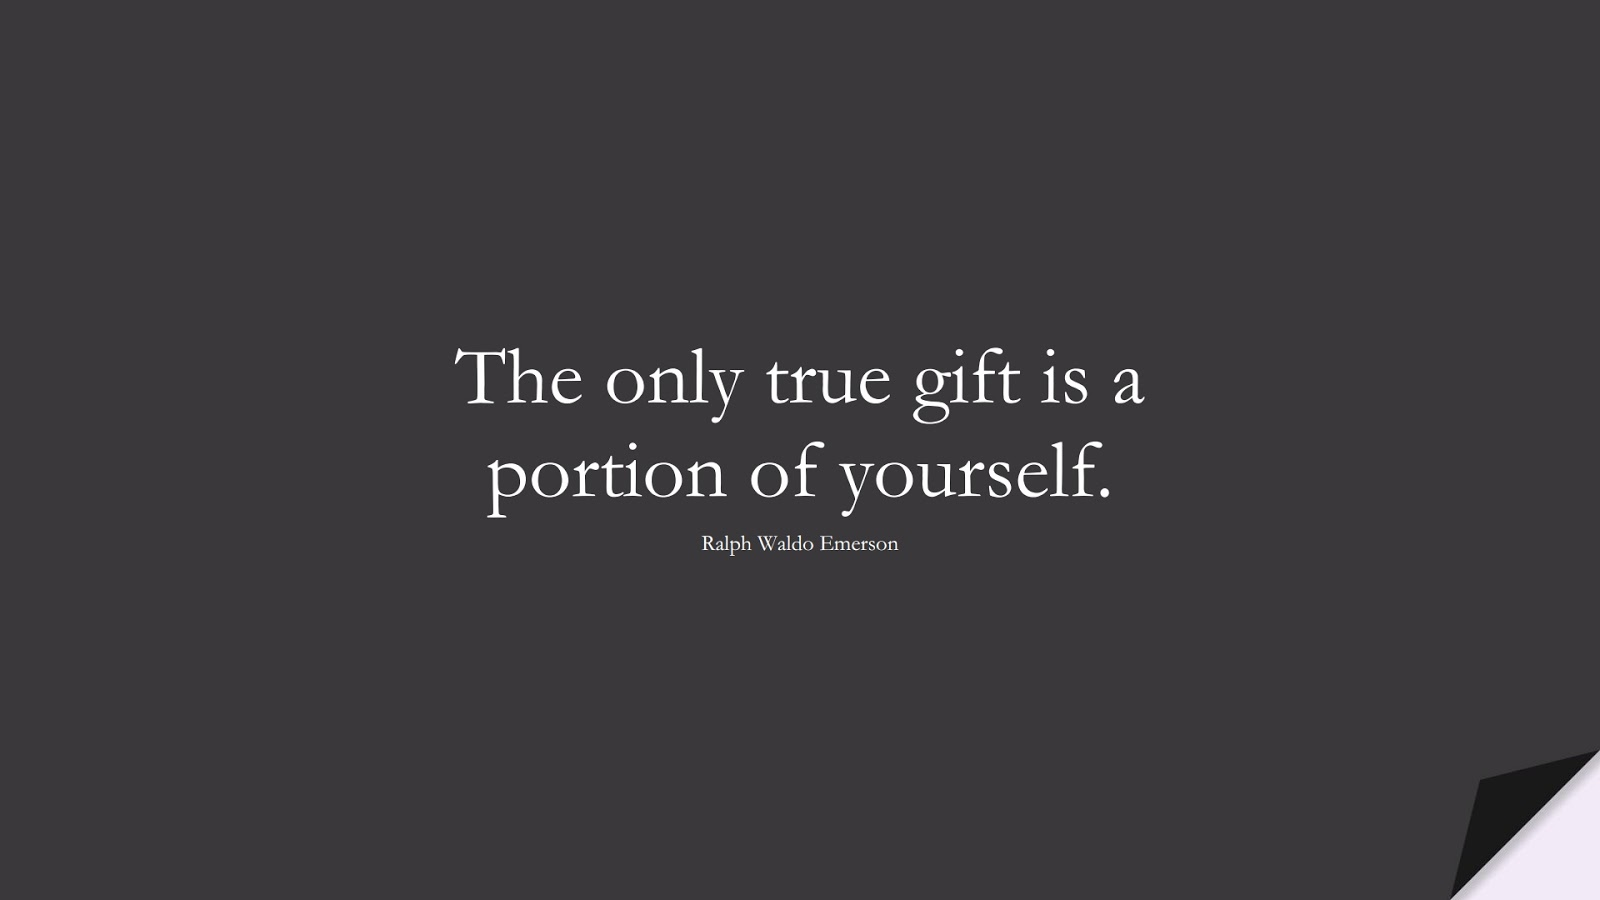 The only true gift is a portion of yourself. (Ralph Waldo Emerson);  #LoveQuotes